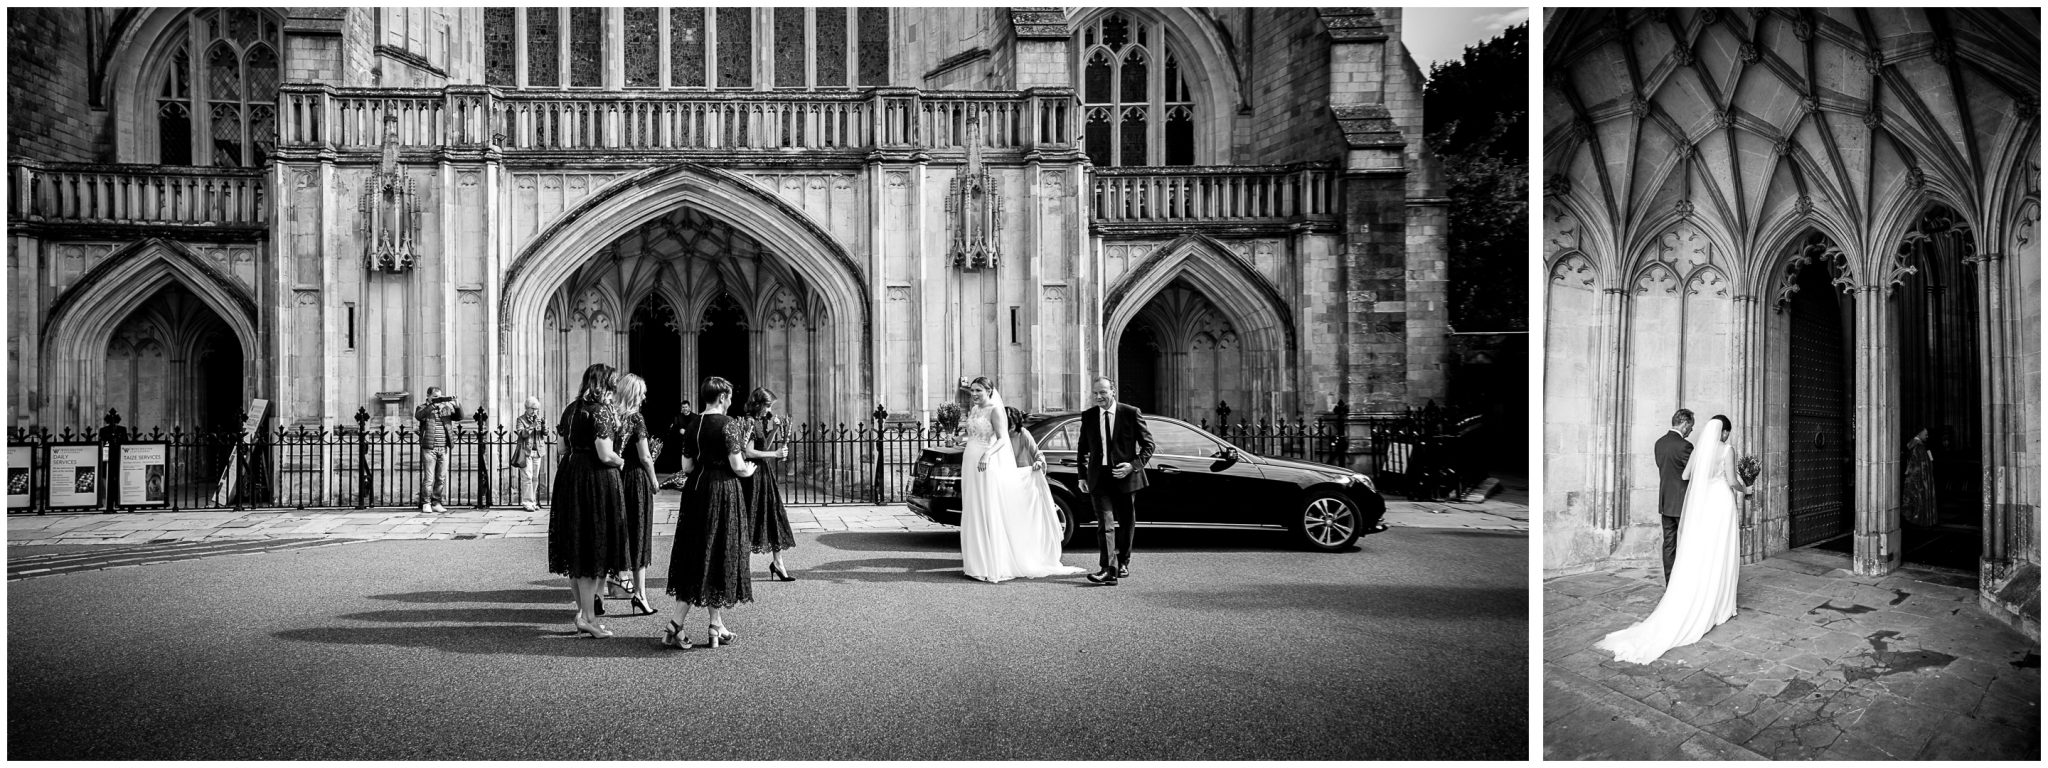 winchester cathedral wedding photography bride and bridesmaids enter